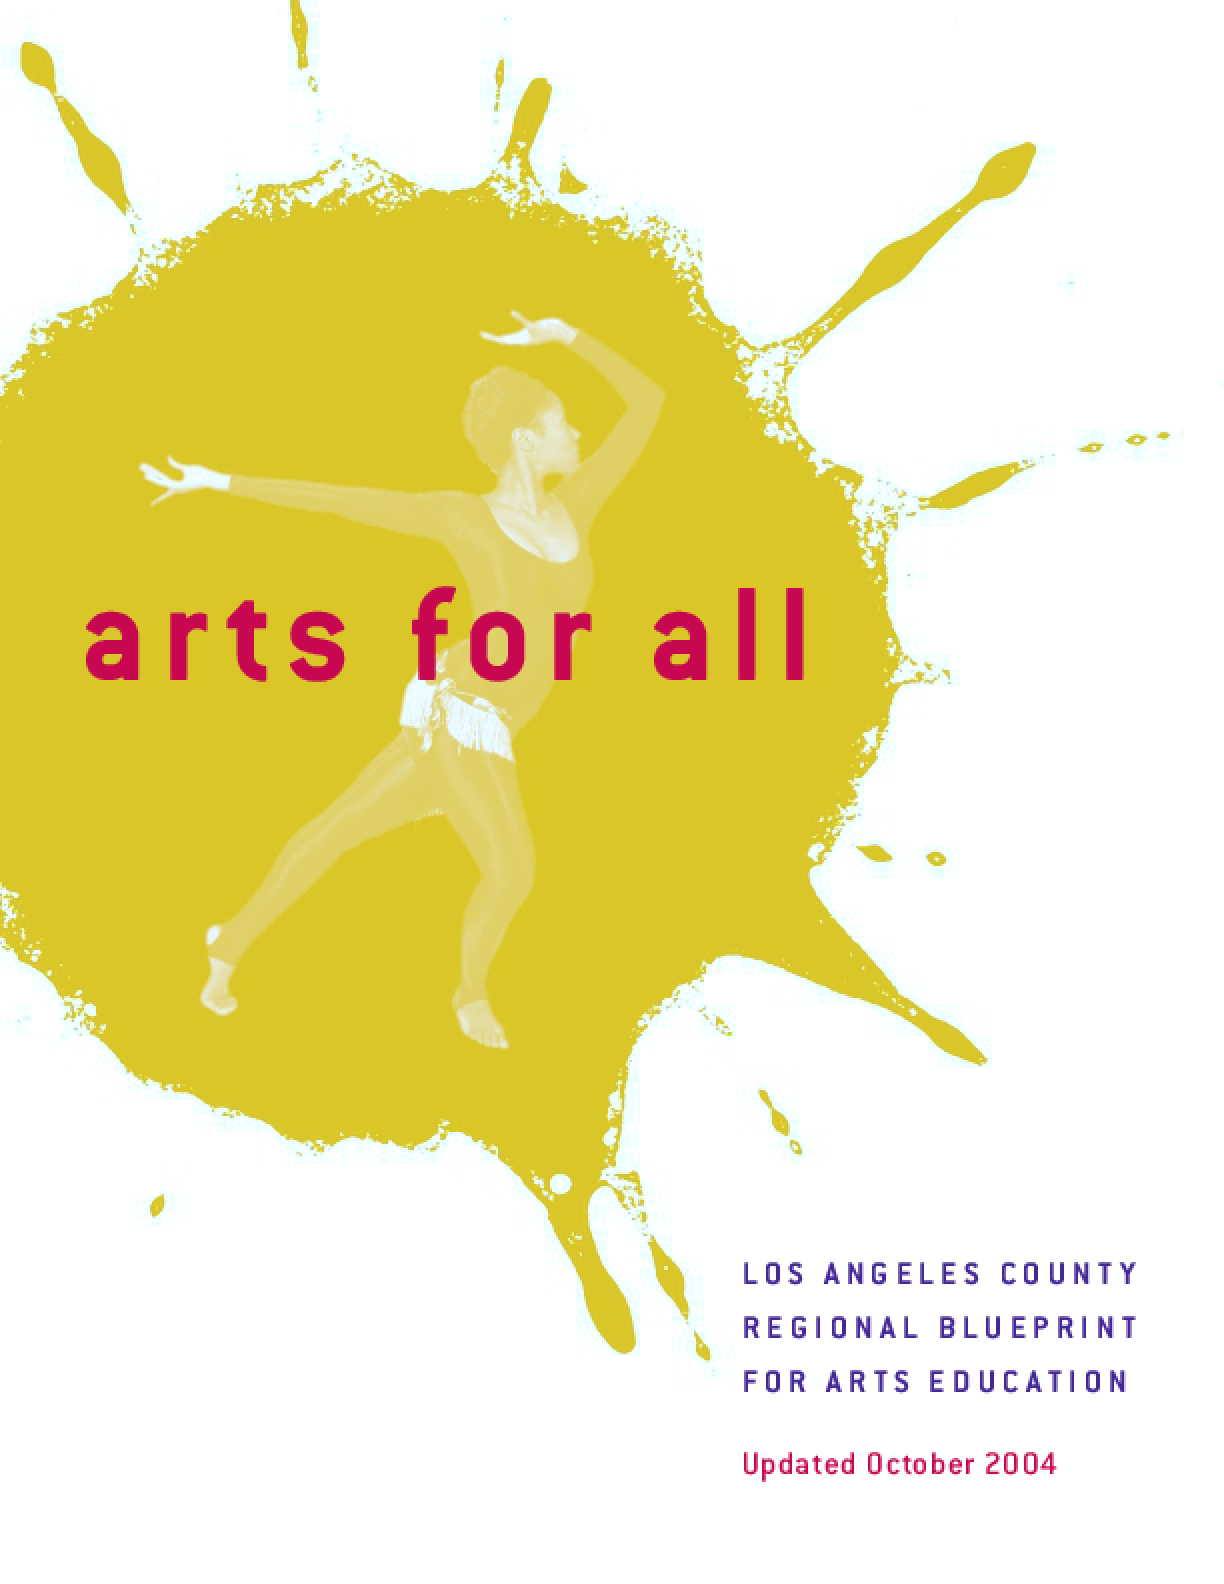 2004 Updated Arts for All: Los Angeles County Regional Blueprint for Arts Education